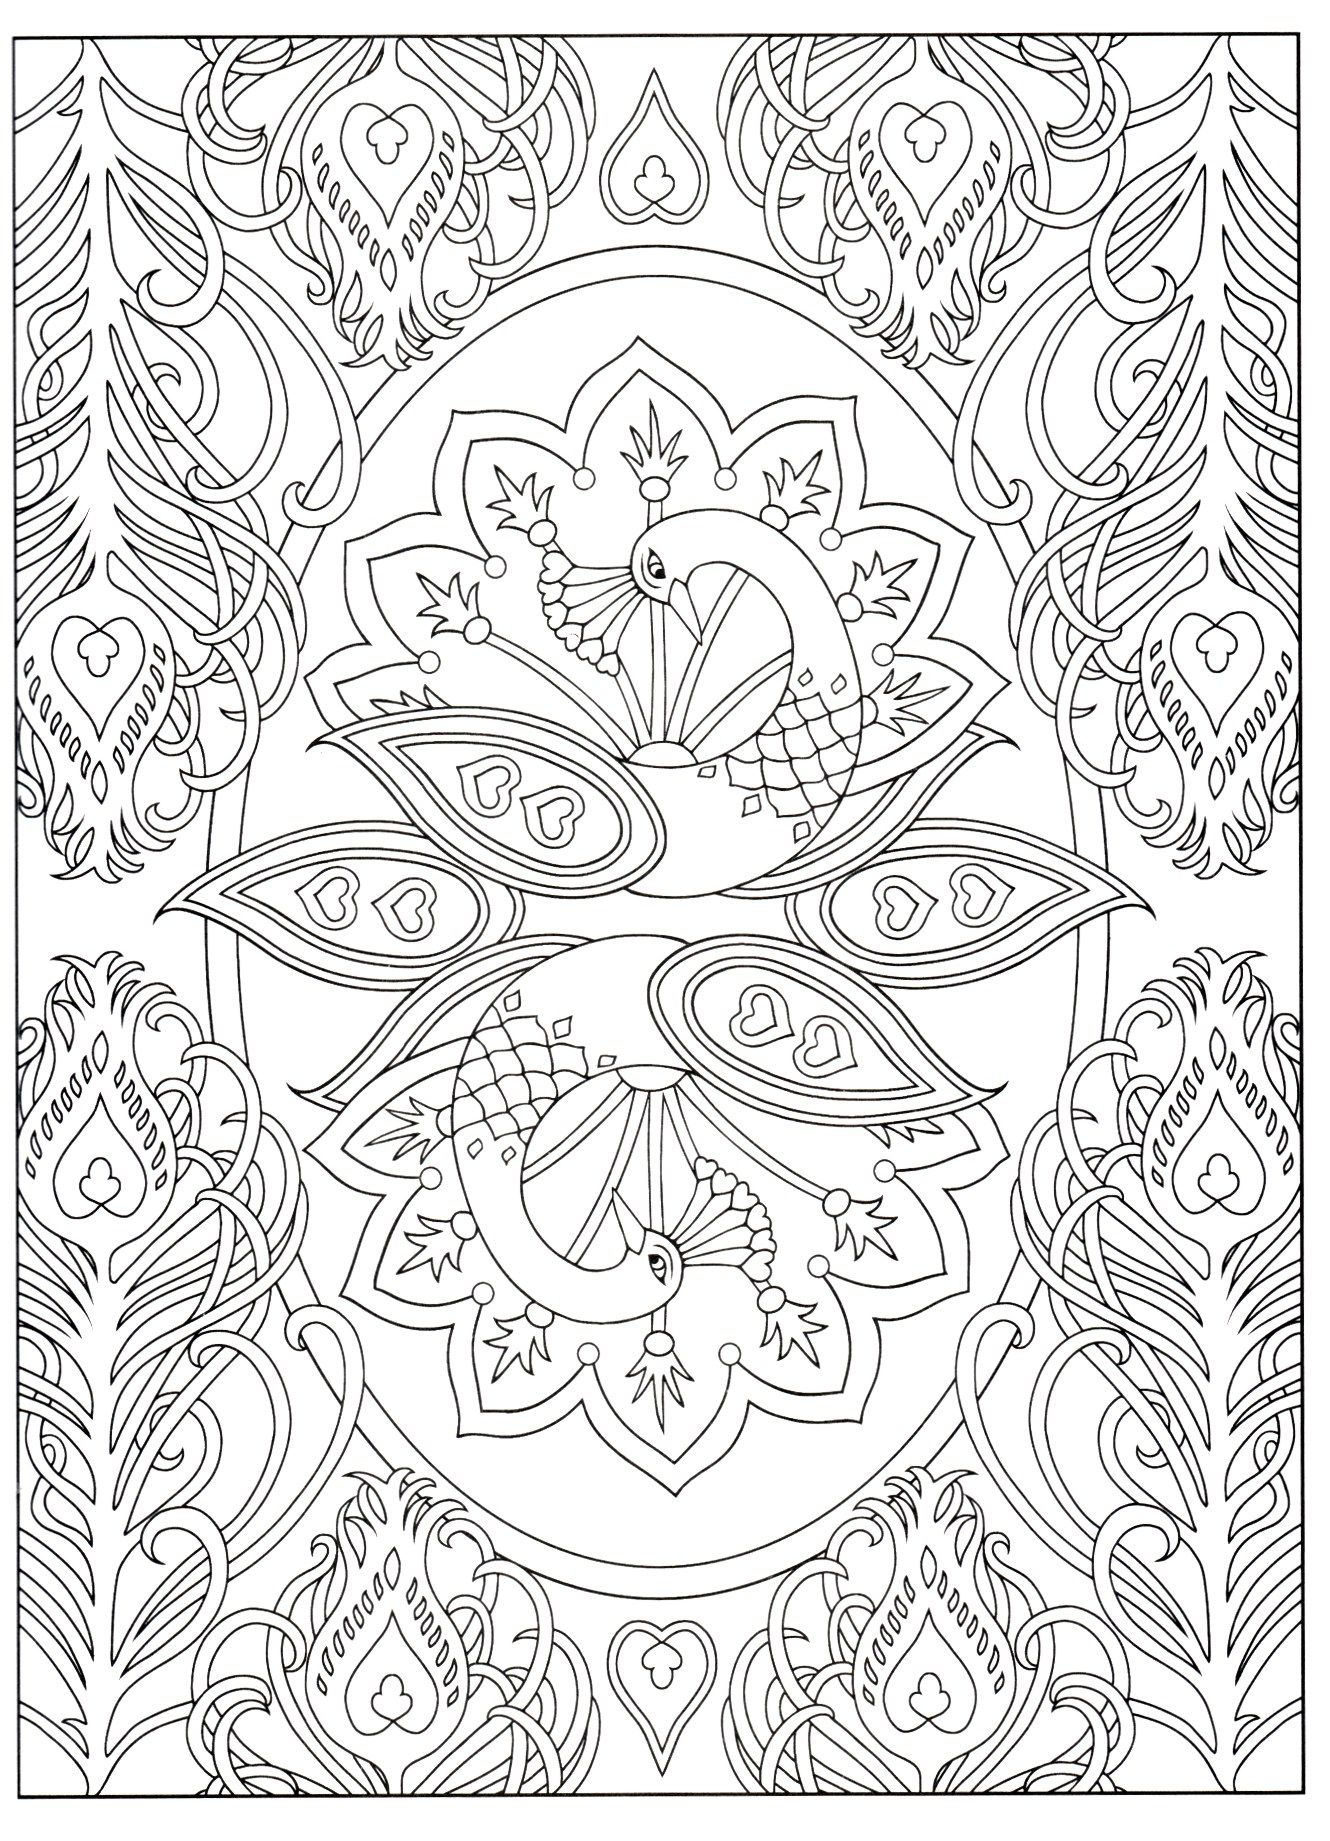 11 Free Printable Adult Coloring Pages Mandala Coloring Pages